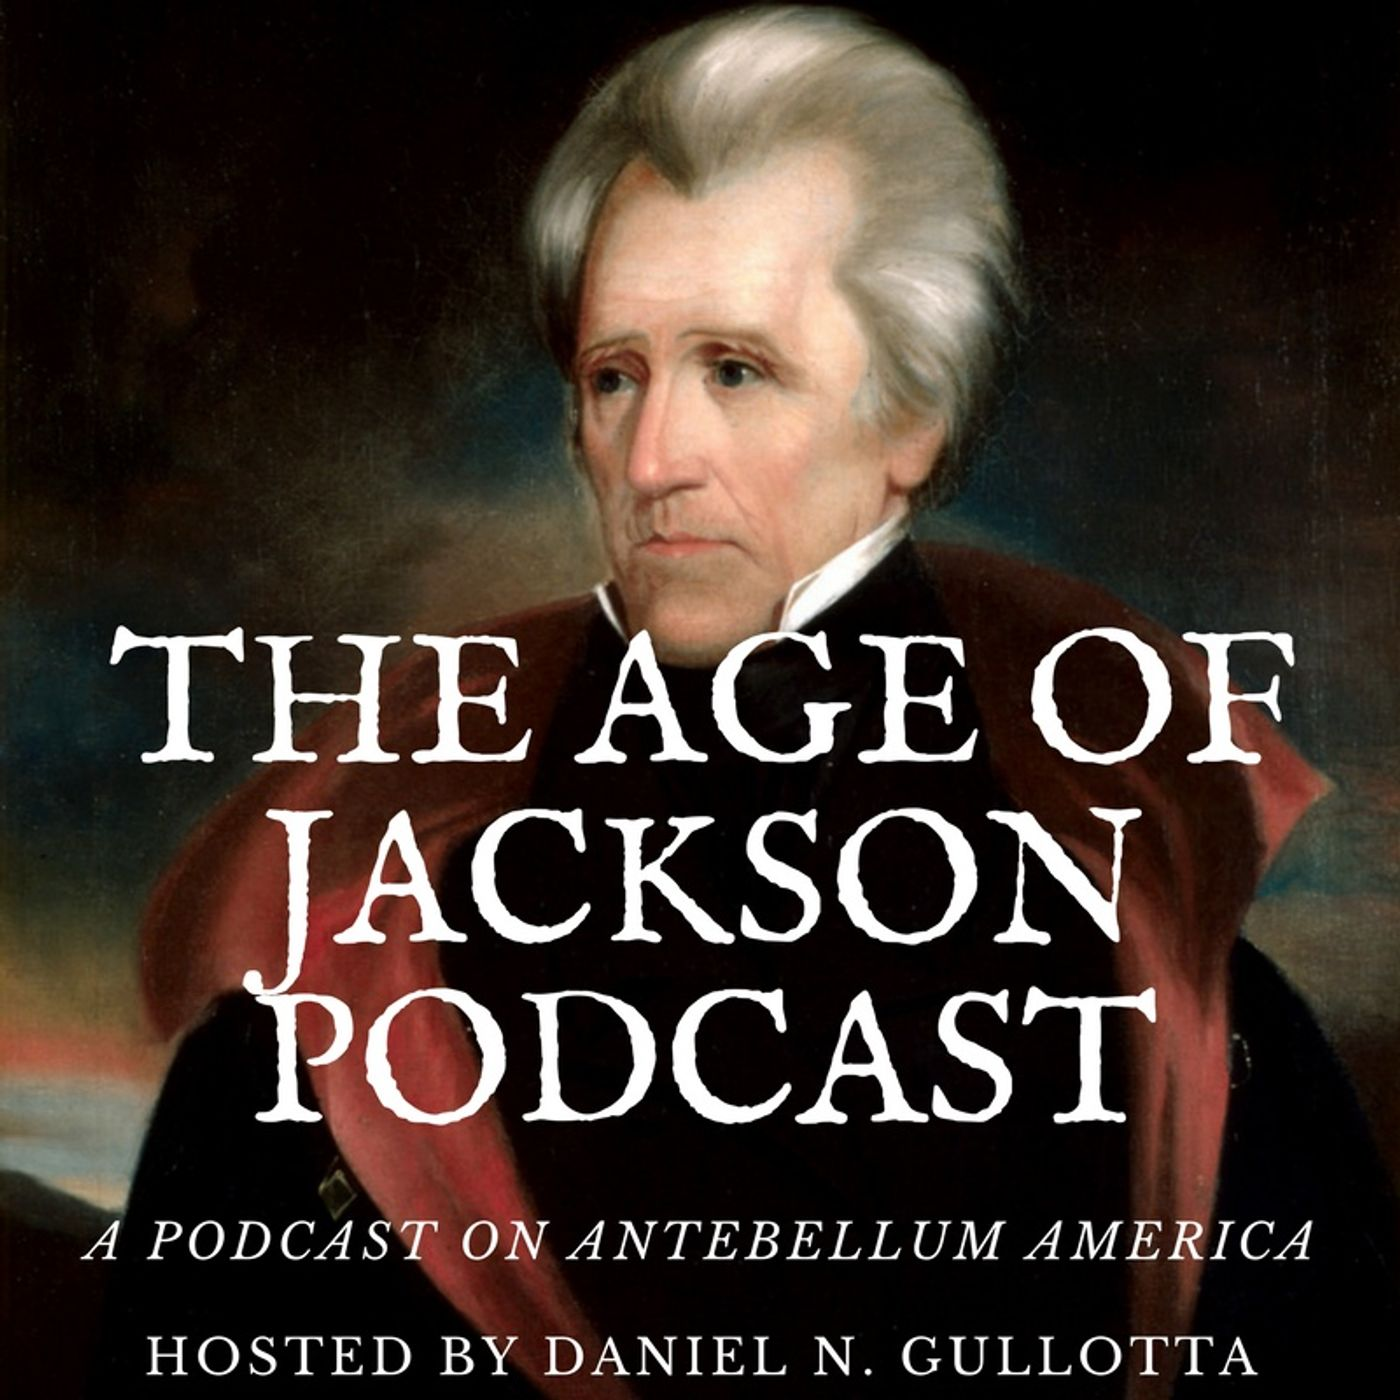 057 The Rise of Andrew Jackson with David S. Heidler and Jeanne T. Heidler